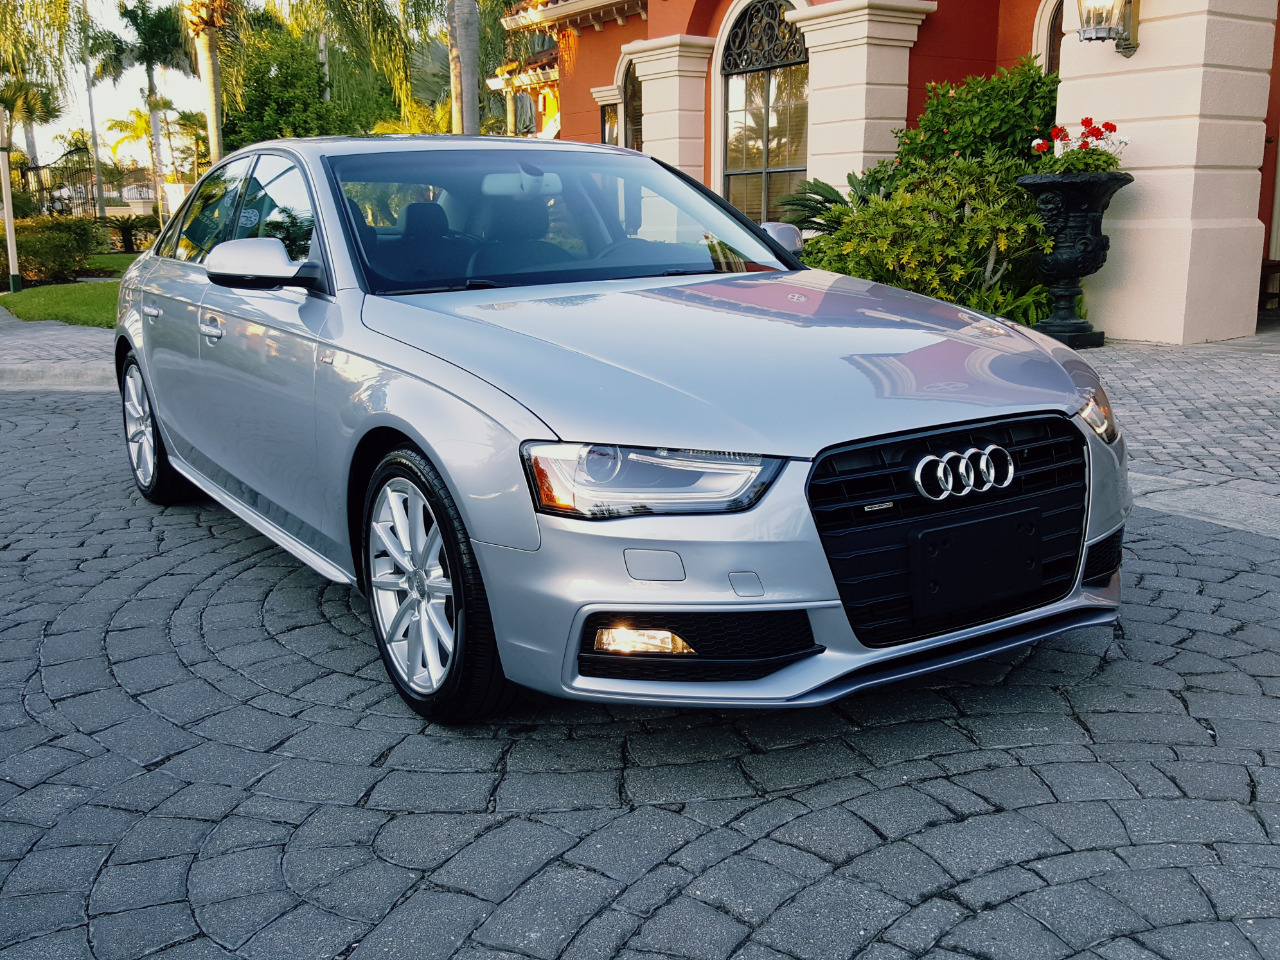 2016 Audi A4 6-Speed Manual, Premium Plus